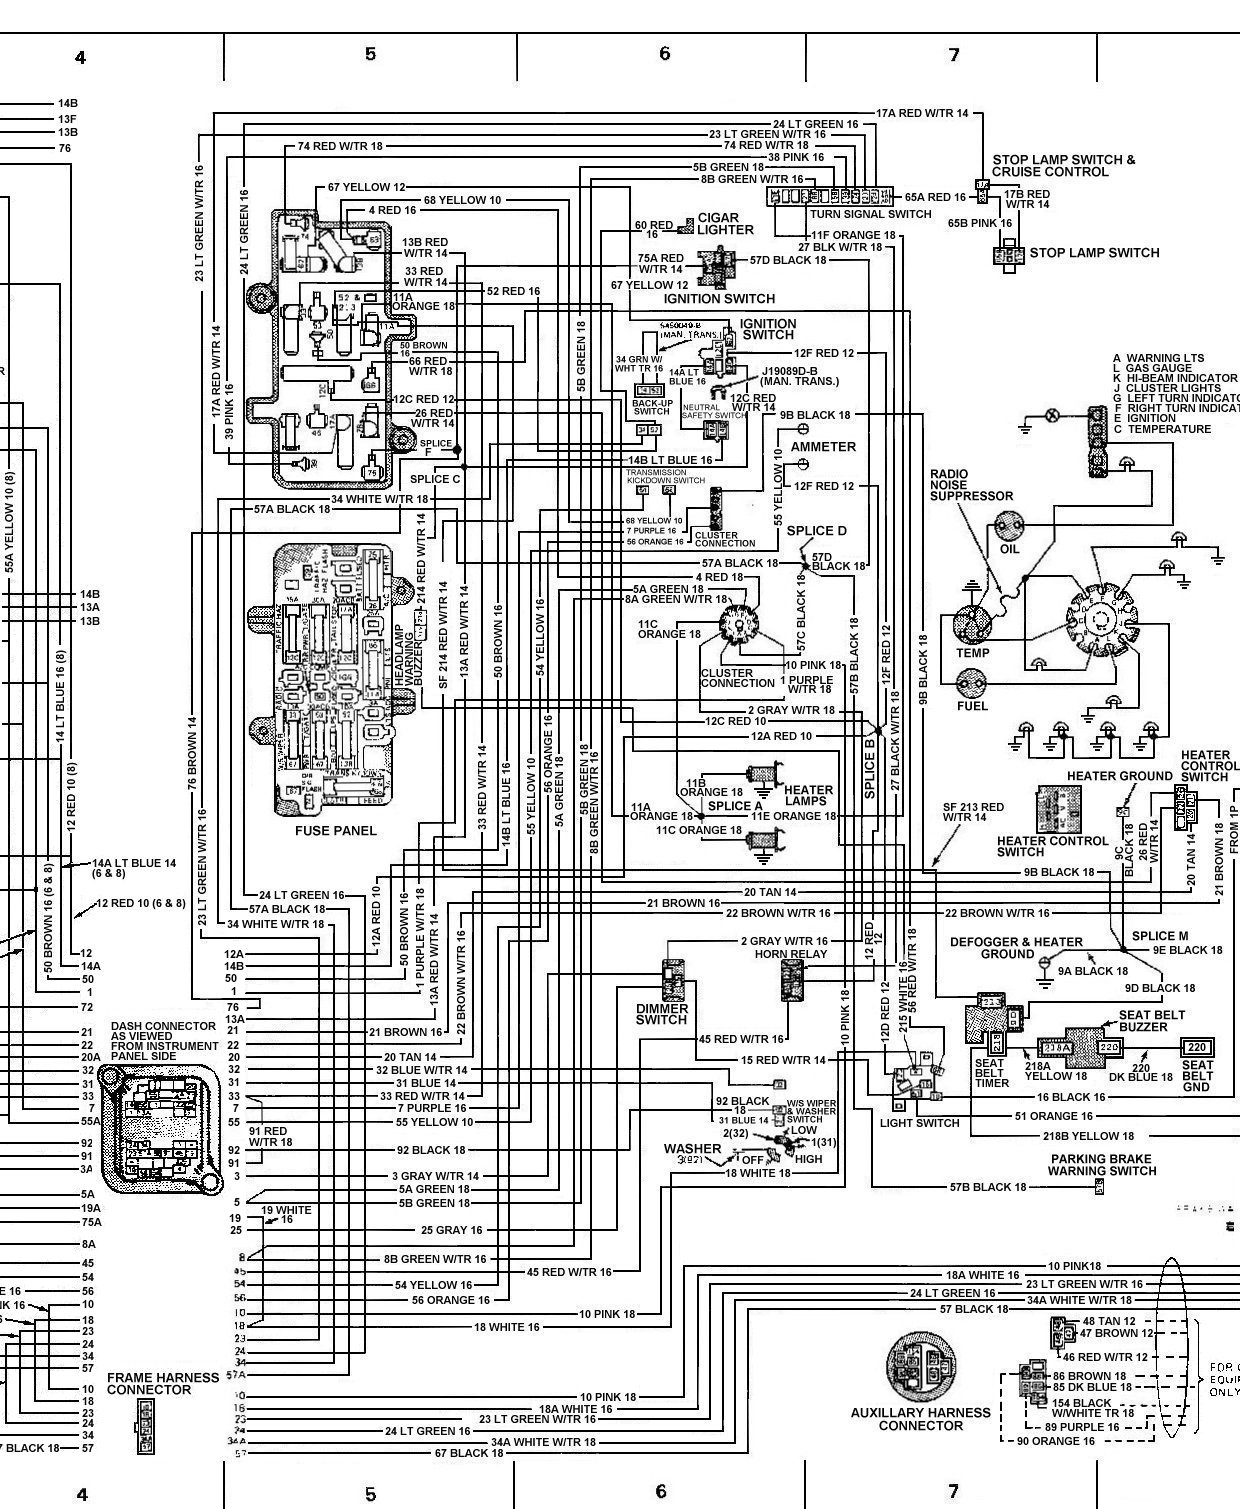 Fsj Wiringdiagr age on 1966 ford thunderbird power window wiring diagram